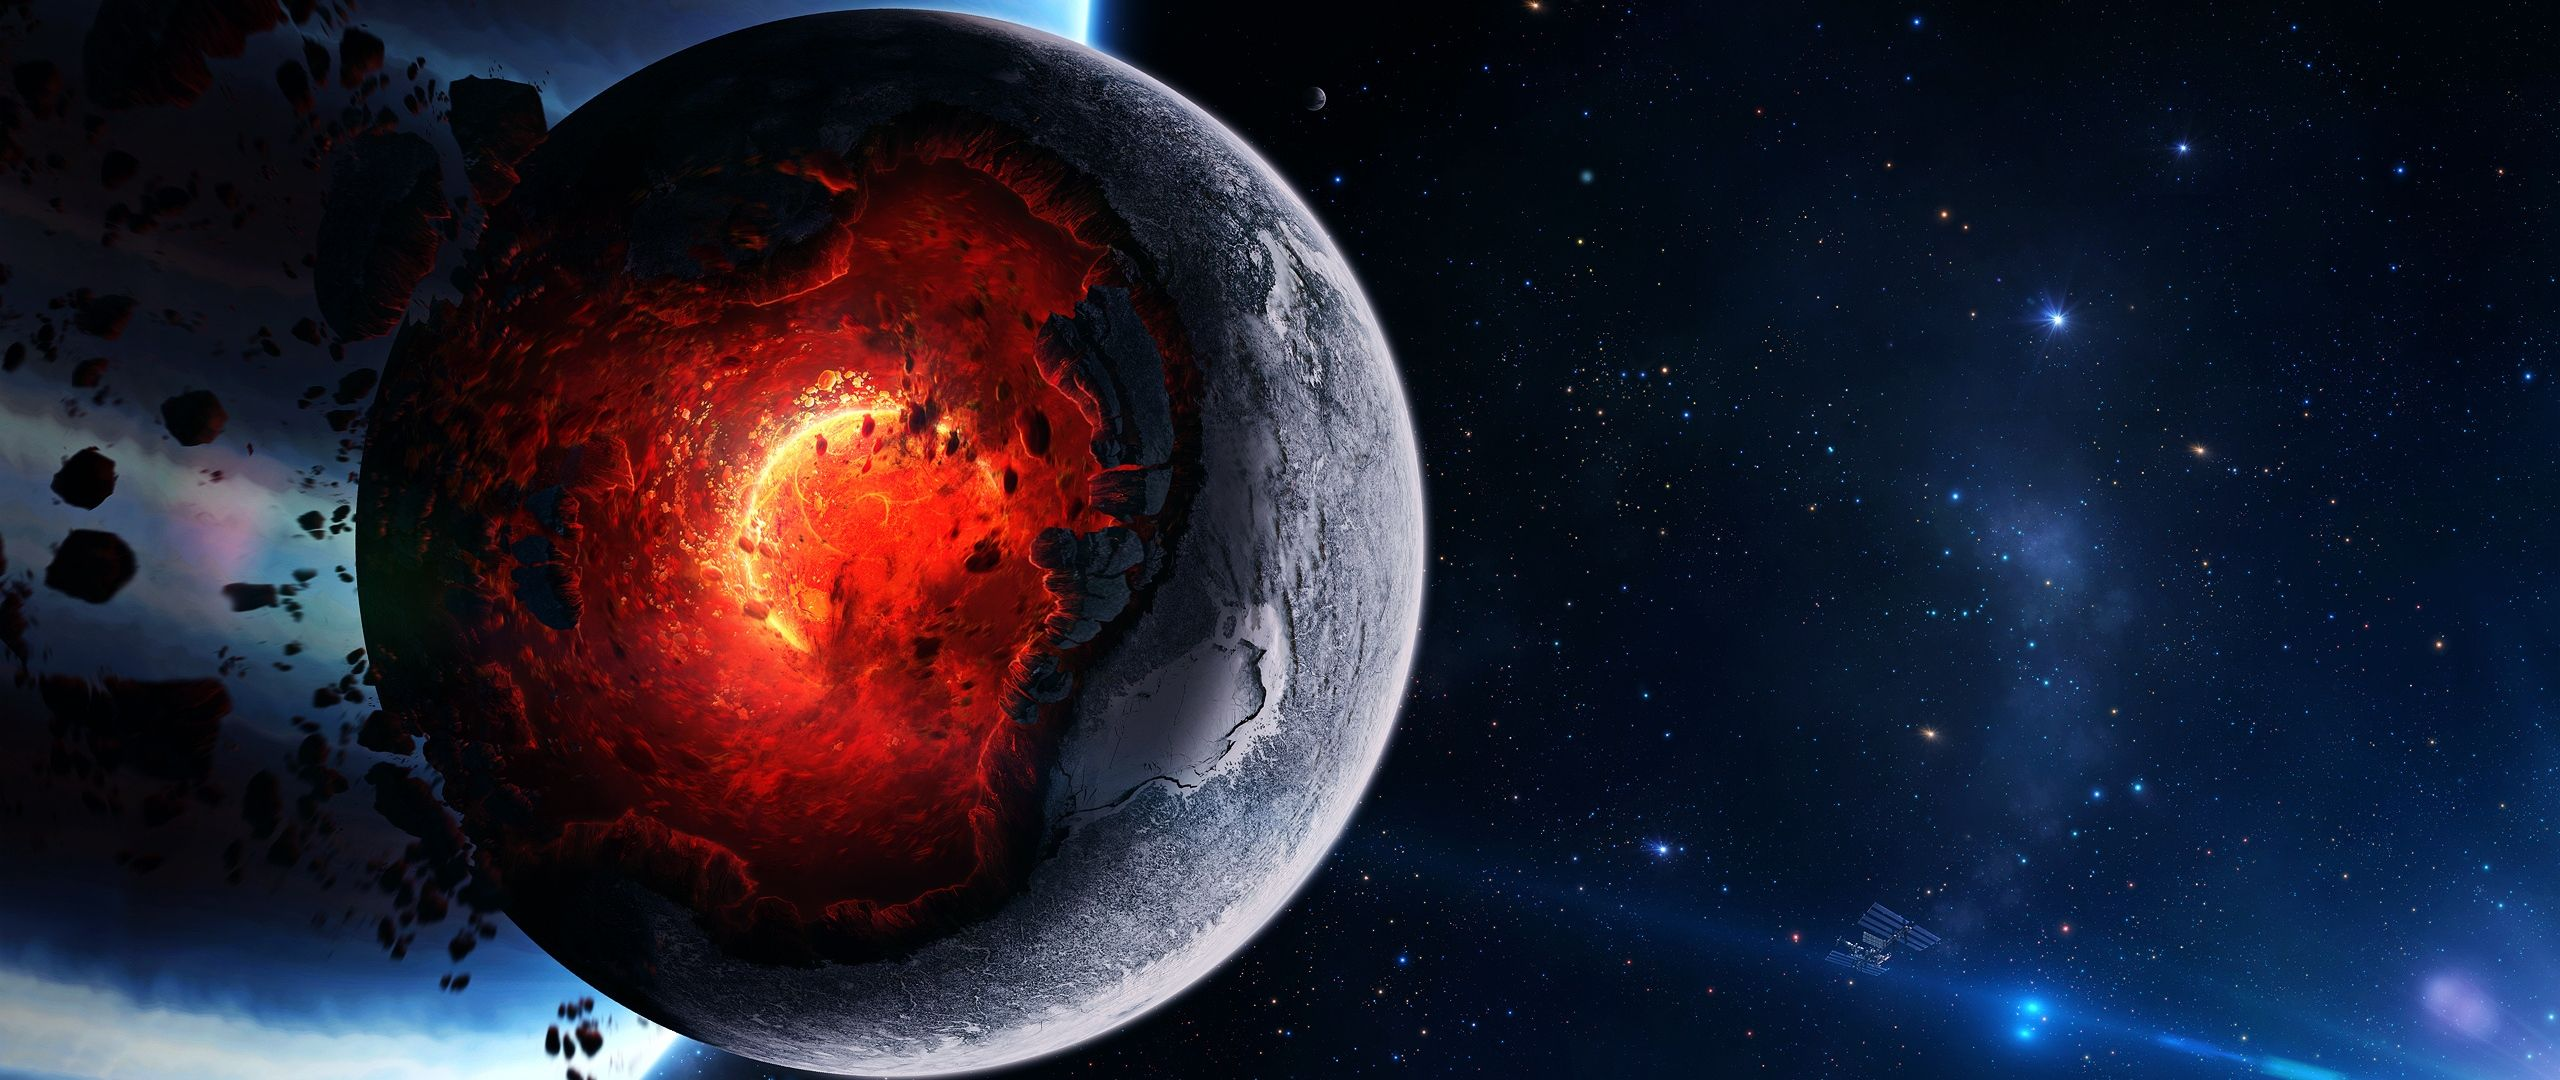 Download Wallpaper 2560x1080 Space Cataclysm Planet Art